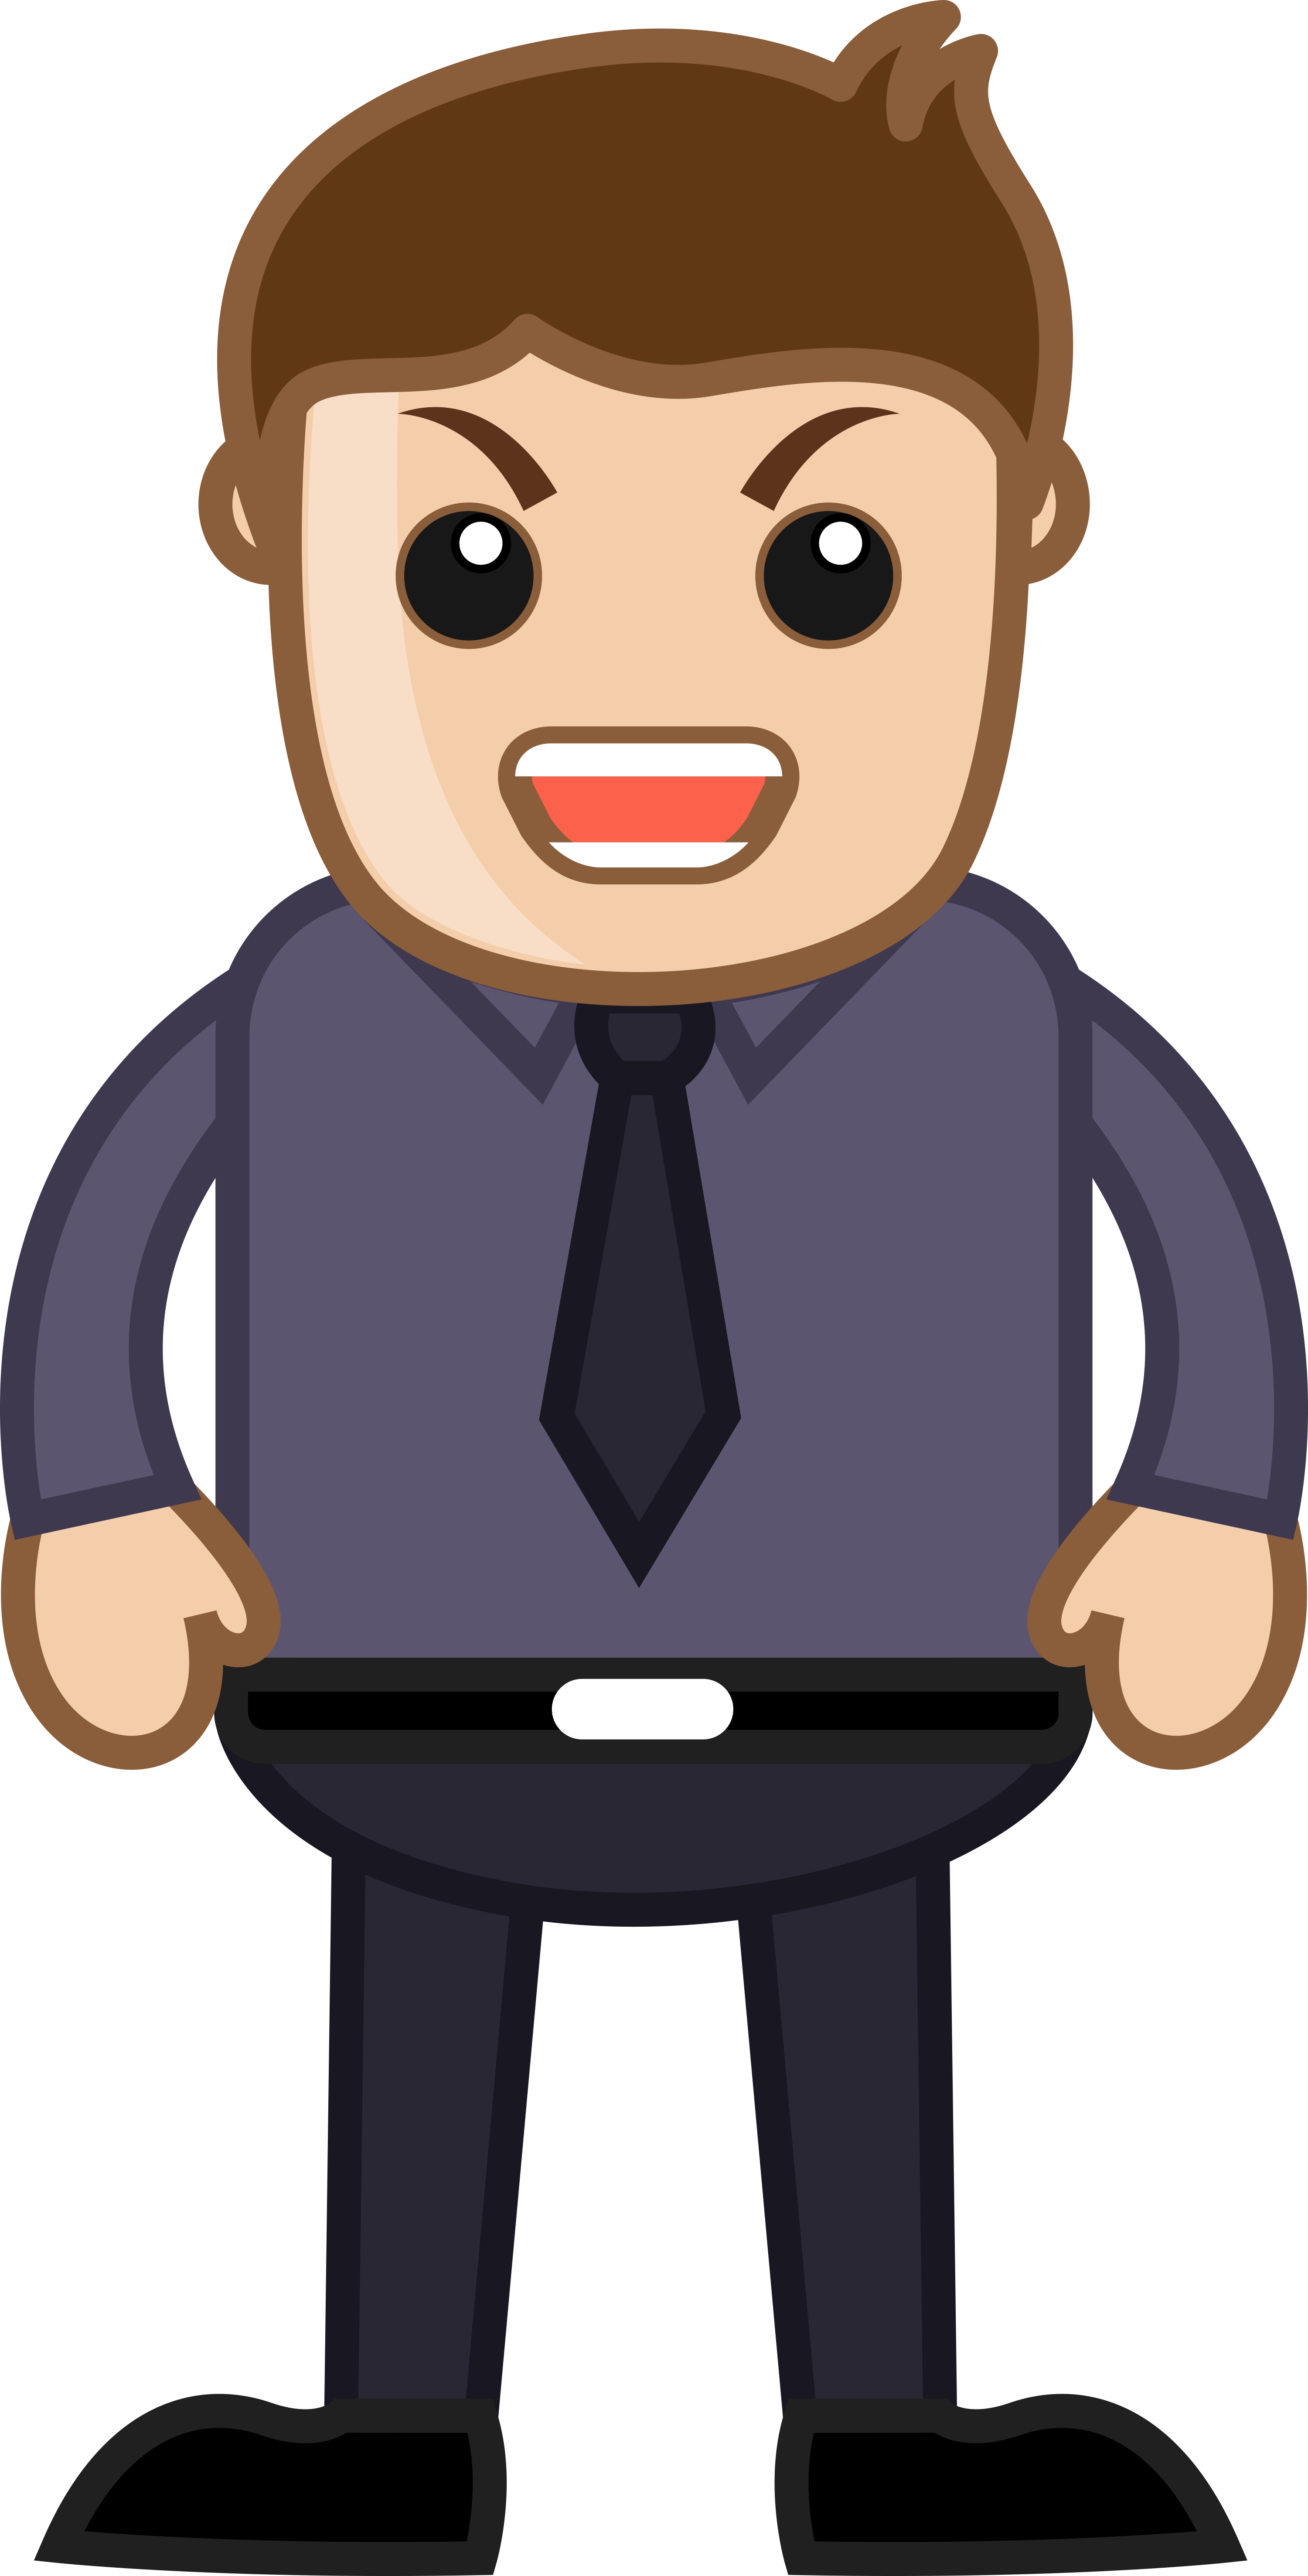 Cartoon people png. Angry man office corporate